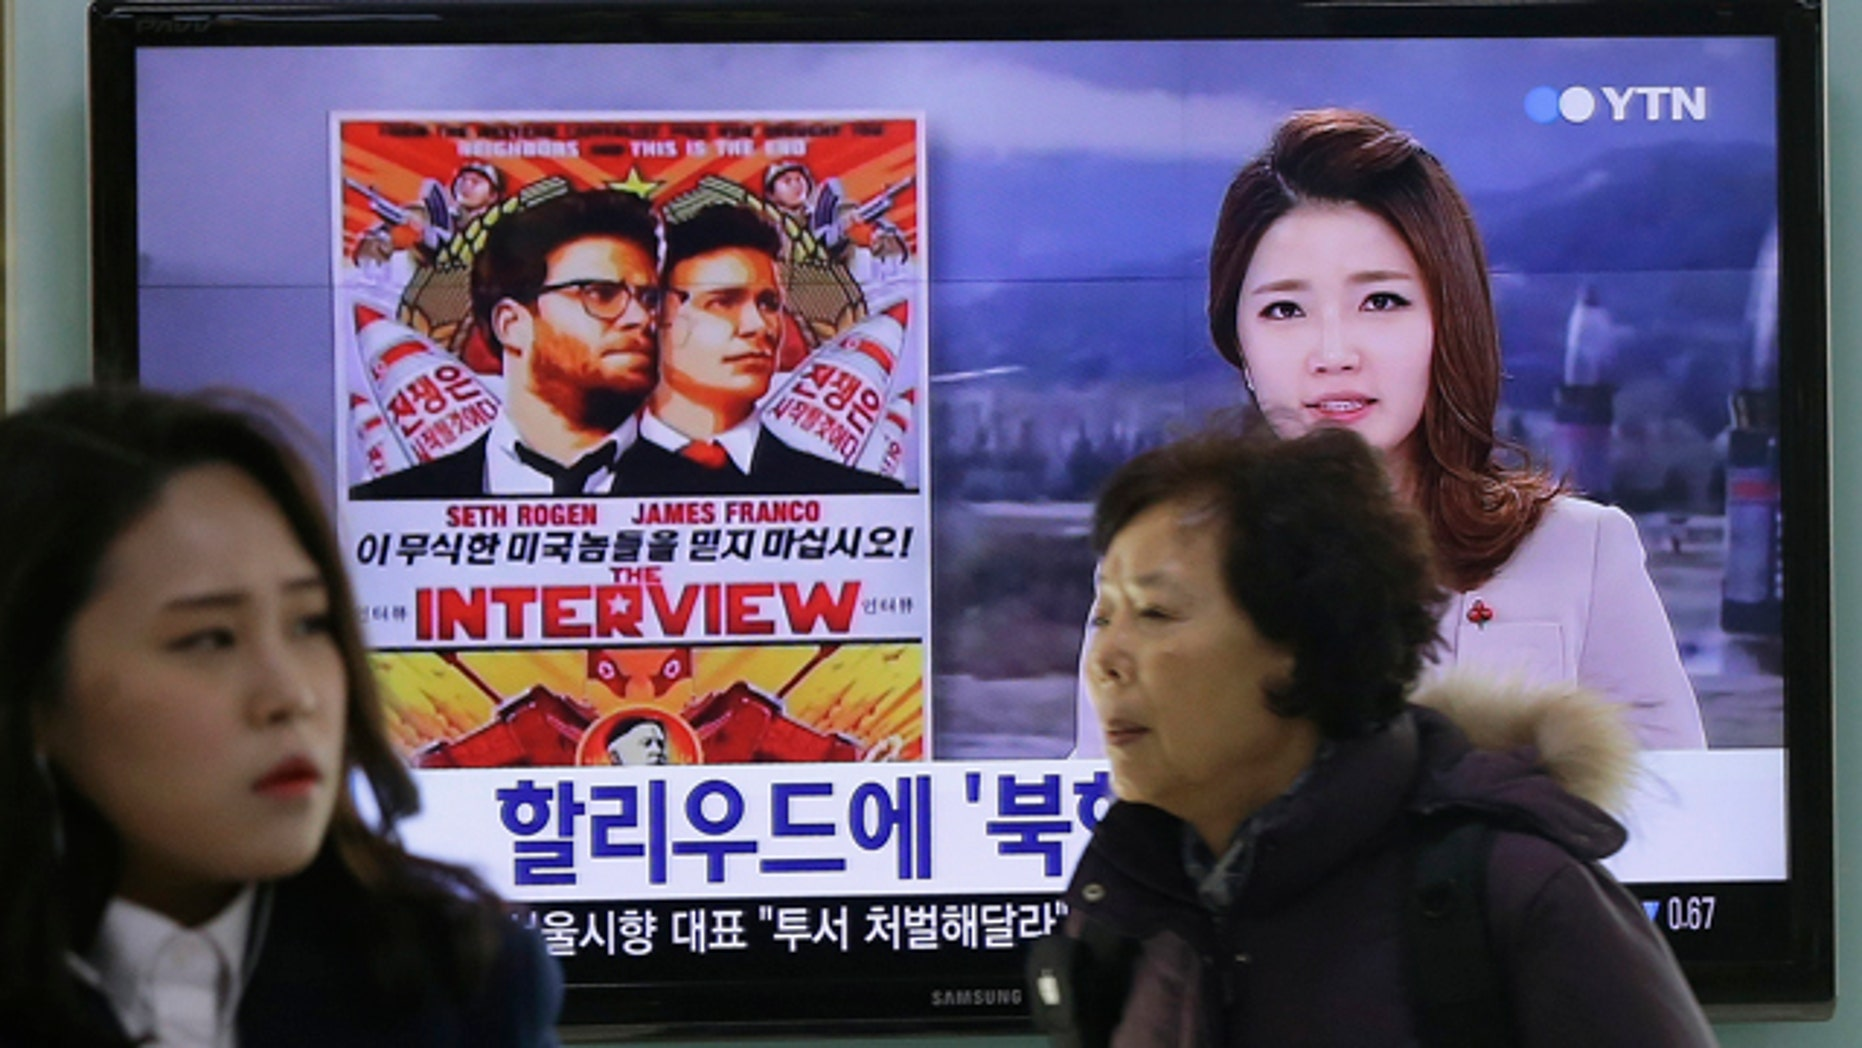 FILE - In this Dec. 22, 2014 file photo, people walk past a TV screen showing a poster of Sony Pictures Entertainment's 'The Interview' in a news report at the Seoul Railway Station in Seoul, South Korea. (AP Photo/Ahn Young-joon, File)